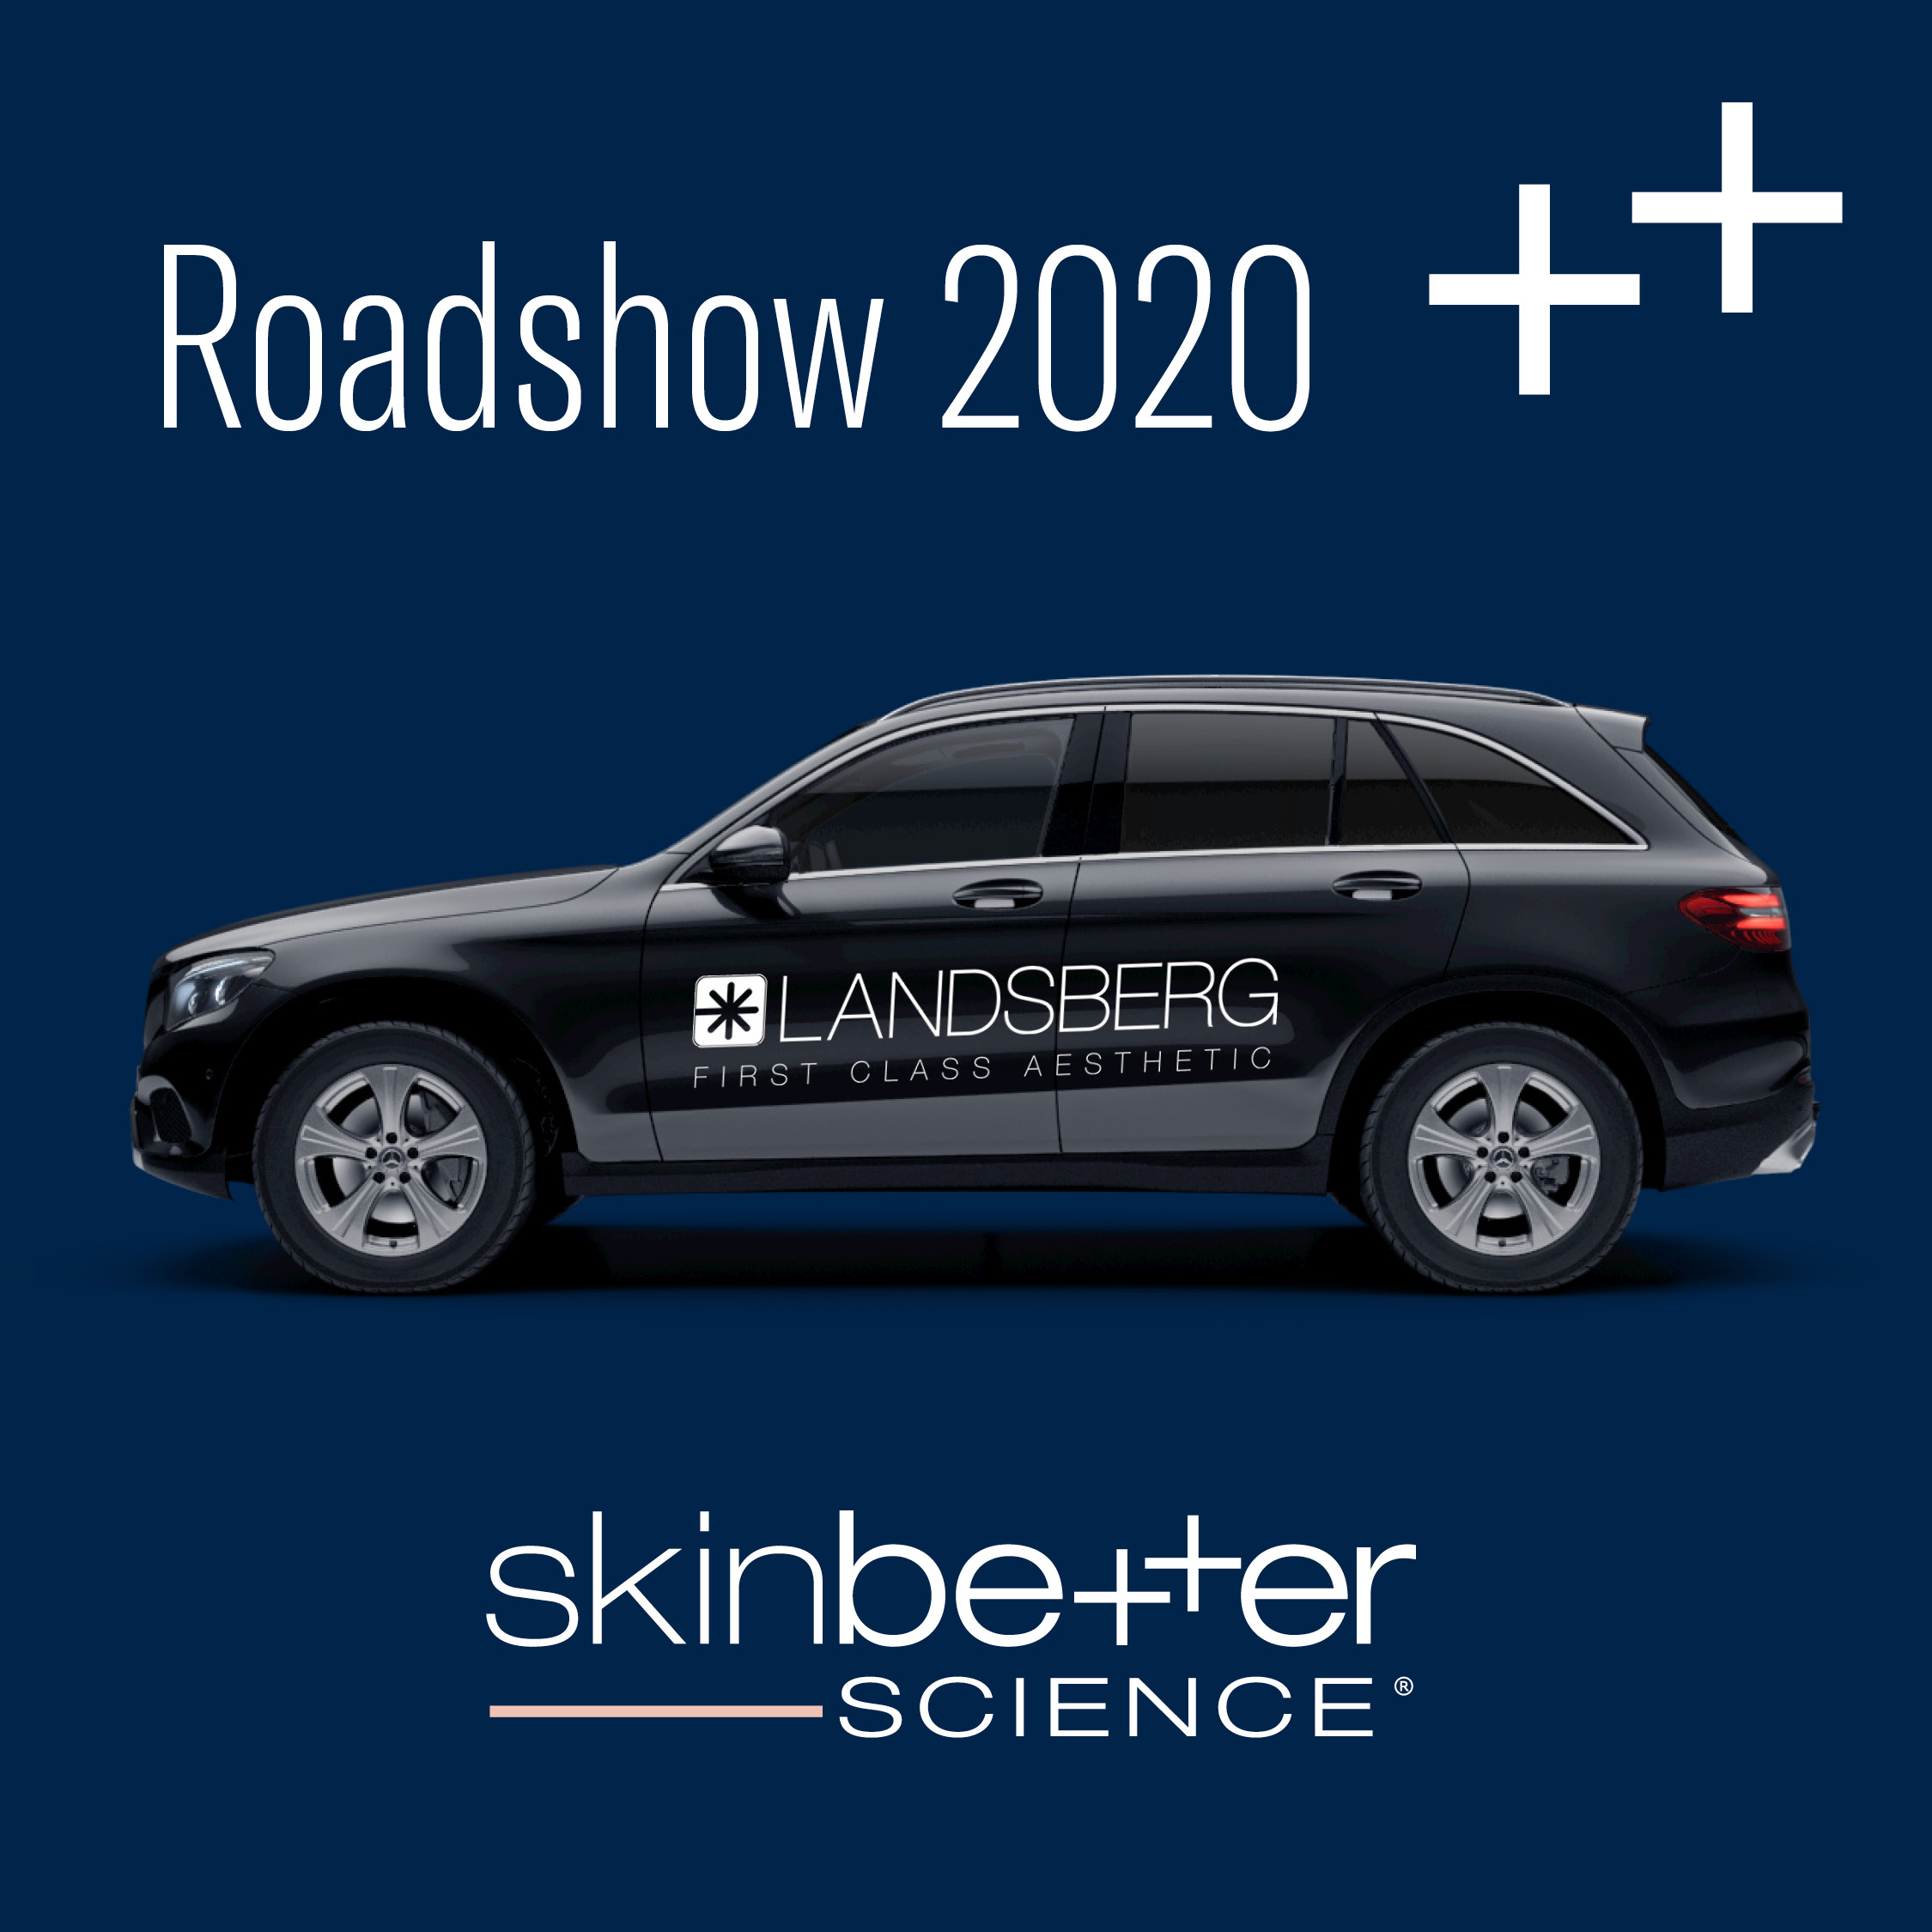 Die skinbetter science® Roadshow 2020